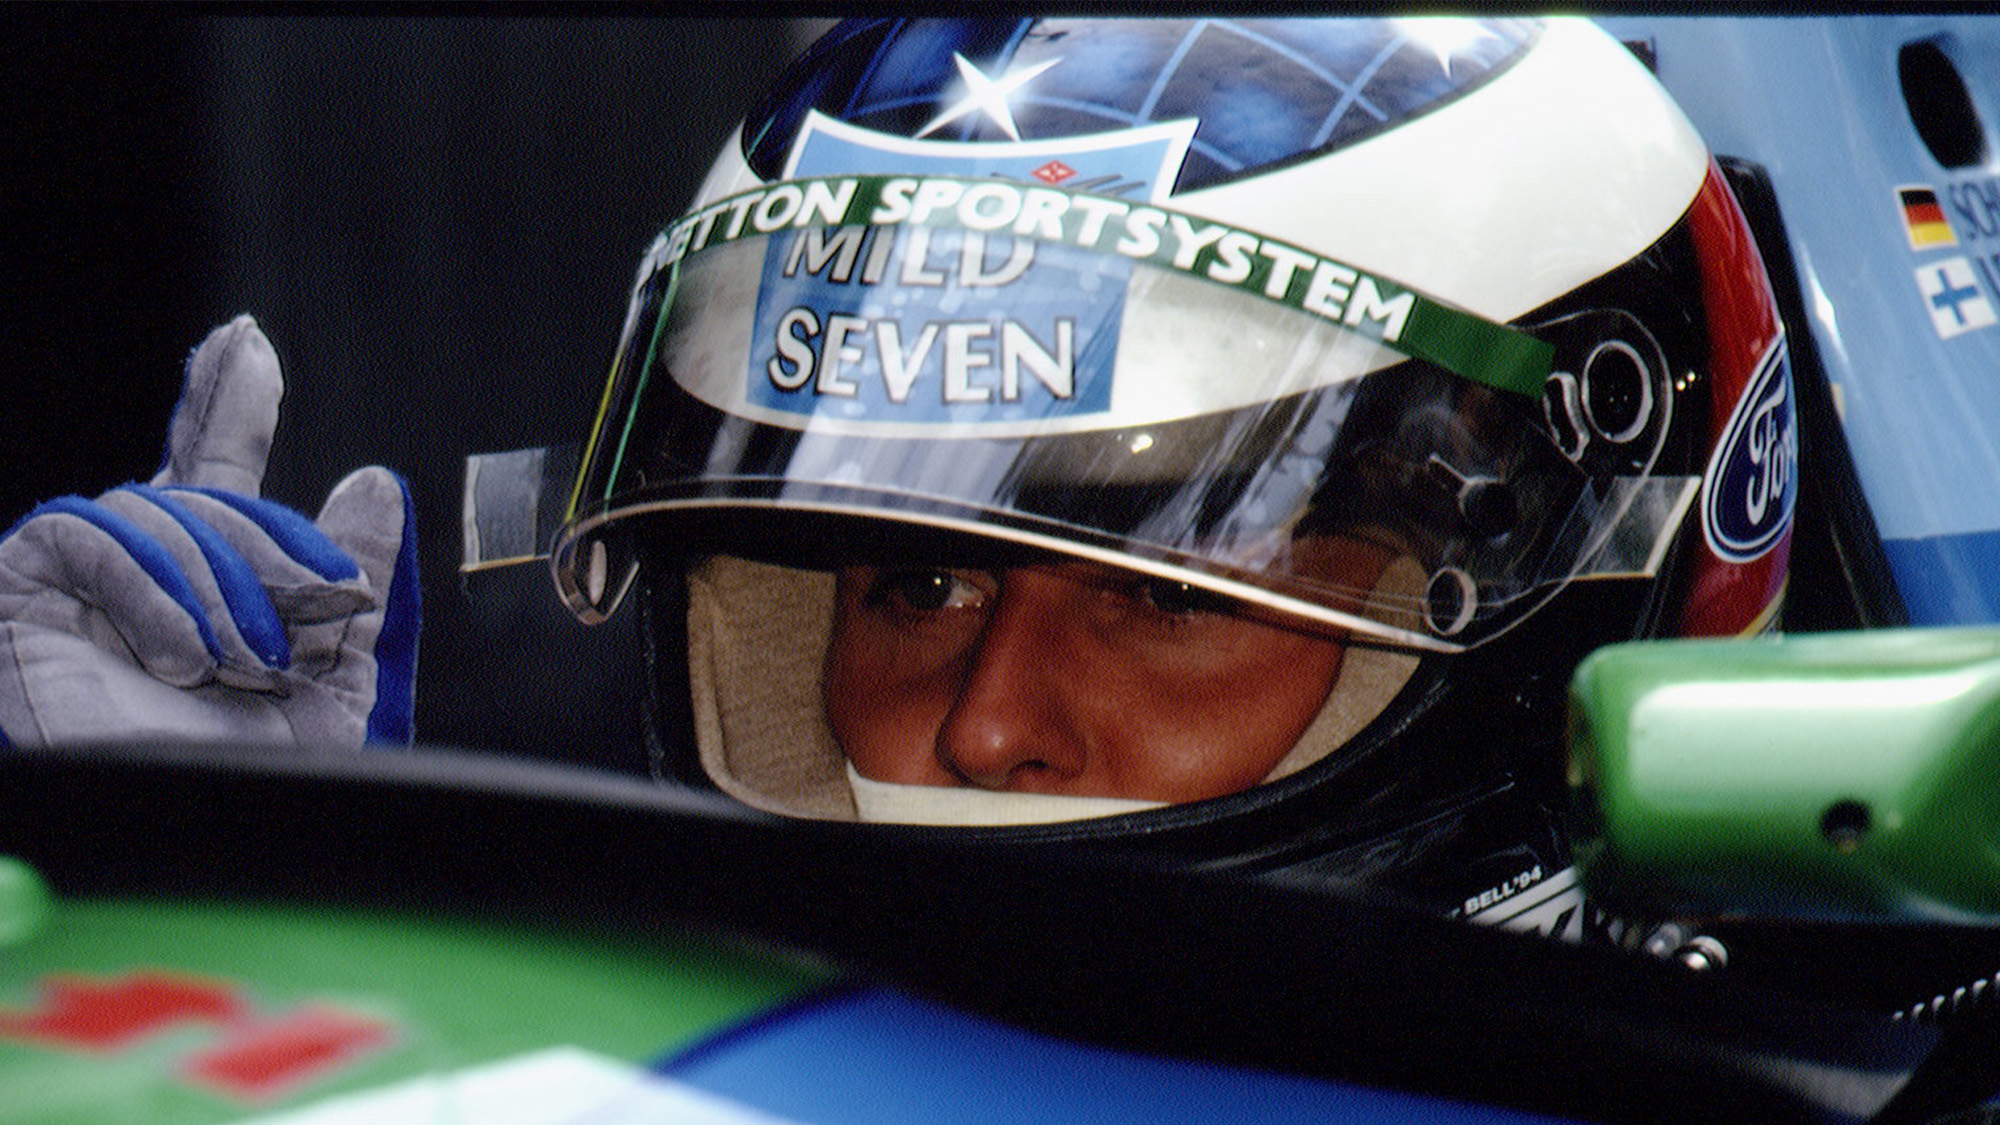 Michael Schumacher peers out from behind his helmet in the 1994 Benetton Ford